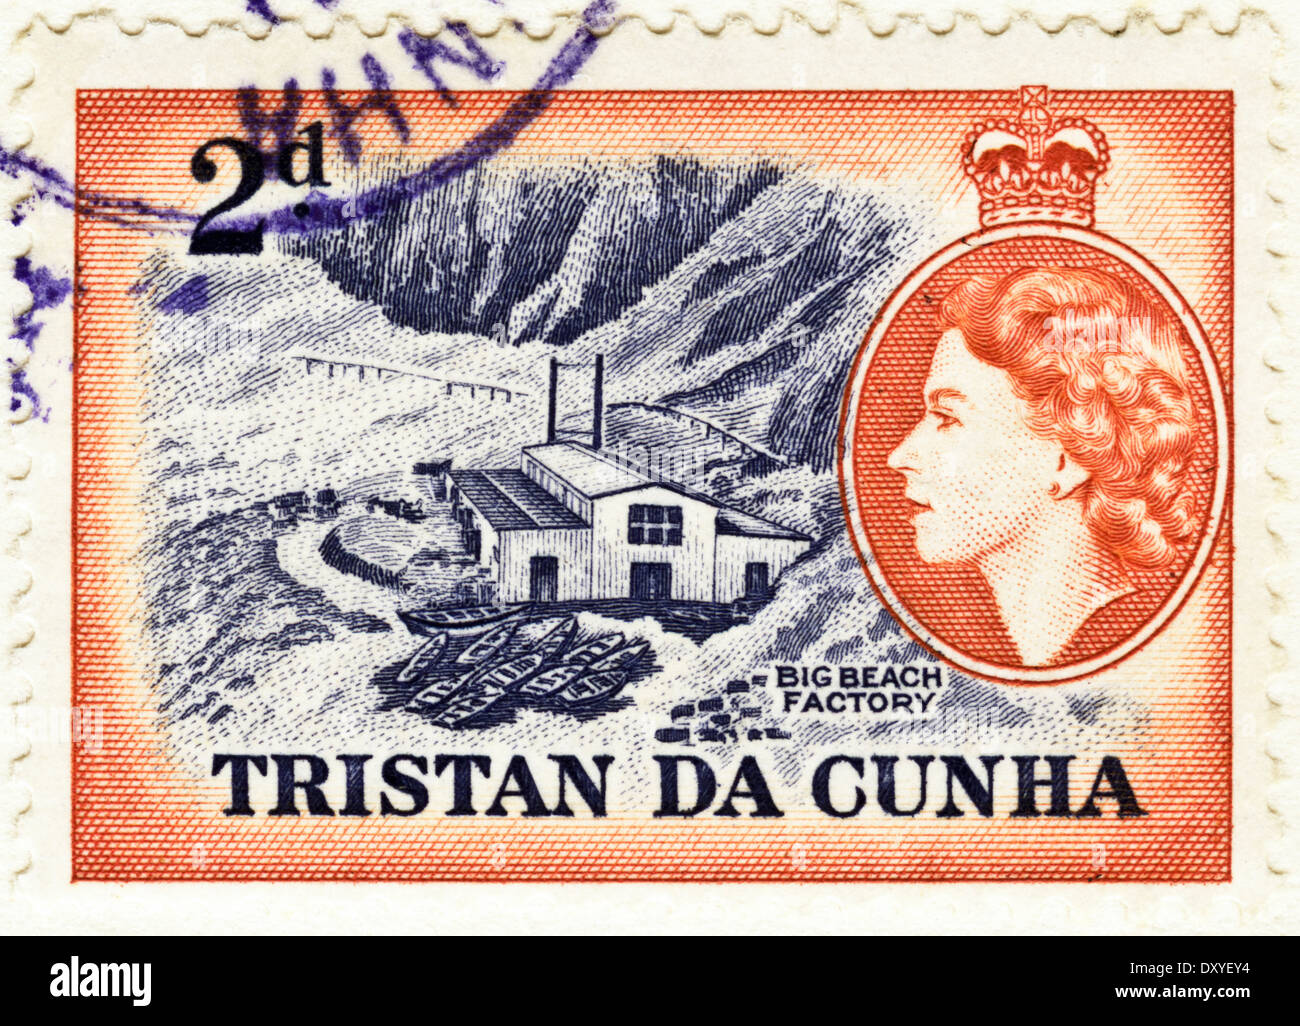 postage stamp 2d Tristan Da Cunha with Queen Elizabeth II featuring Big Beach Factory circa 1956 - Stock Image